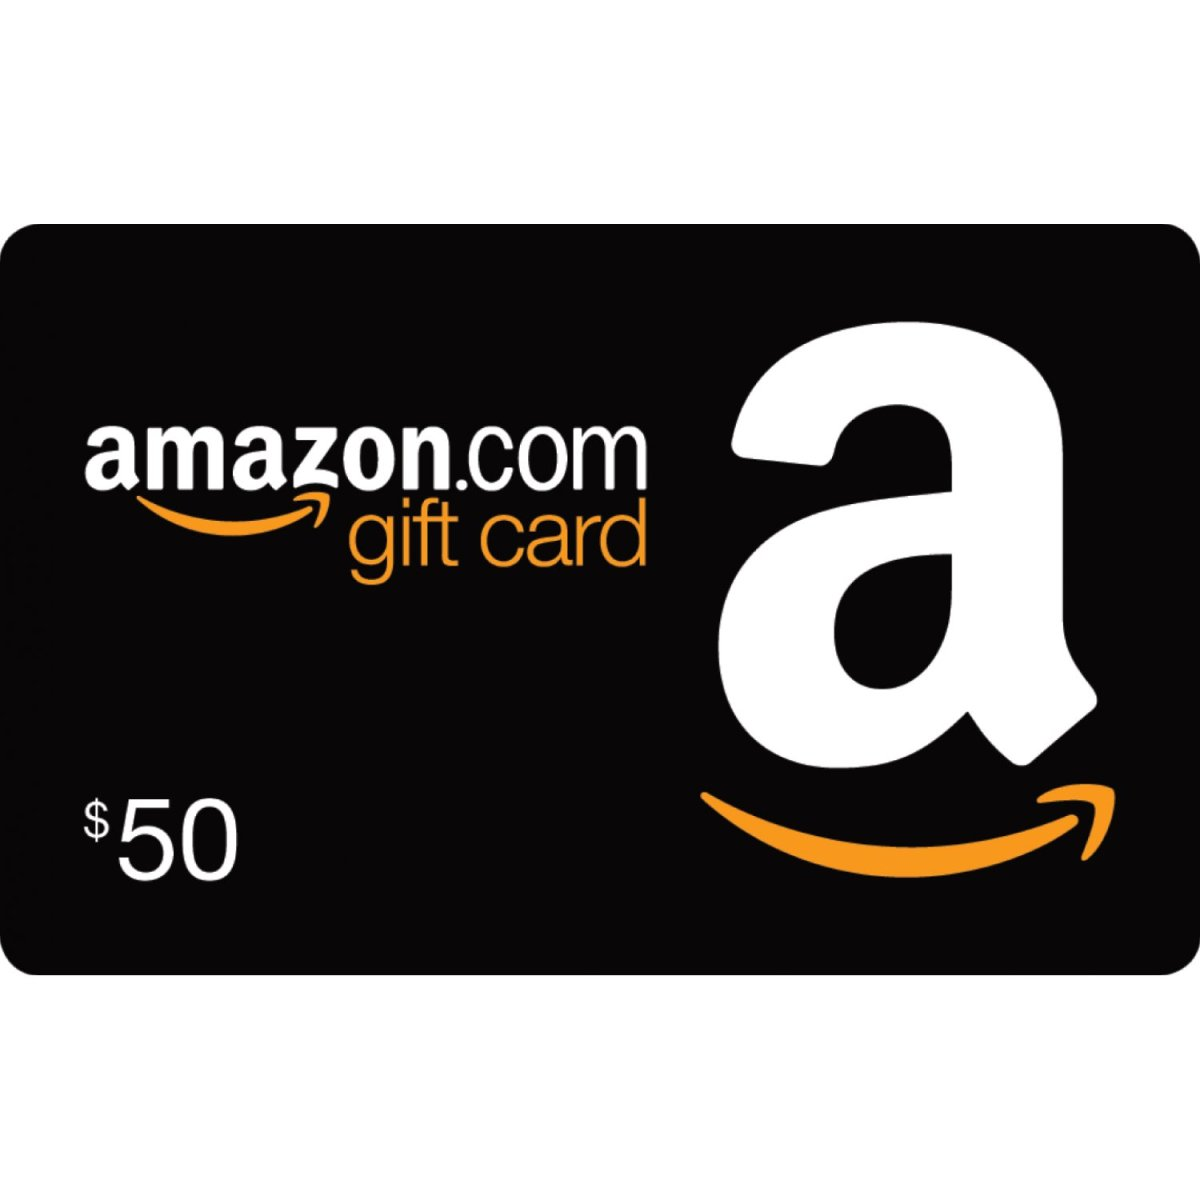 Who Sells Amazon Gift Cards?